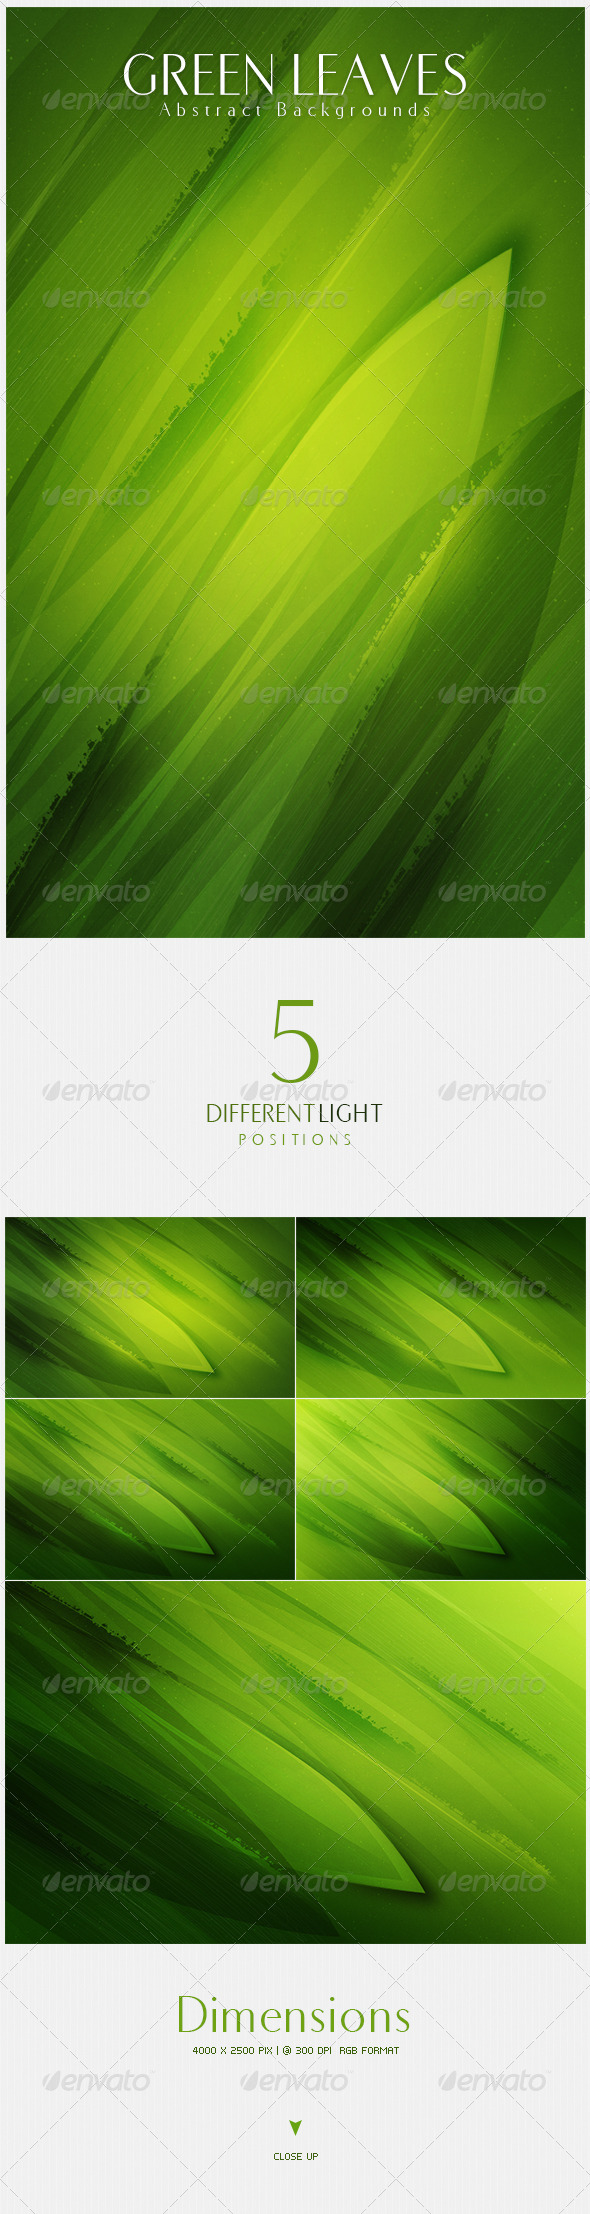 GraphicRiver Green Leaves Abstract Backgrounds 4489240